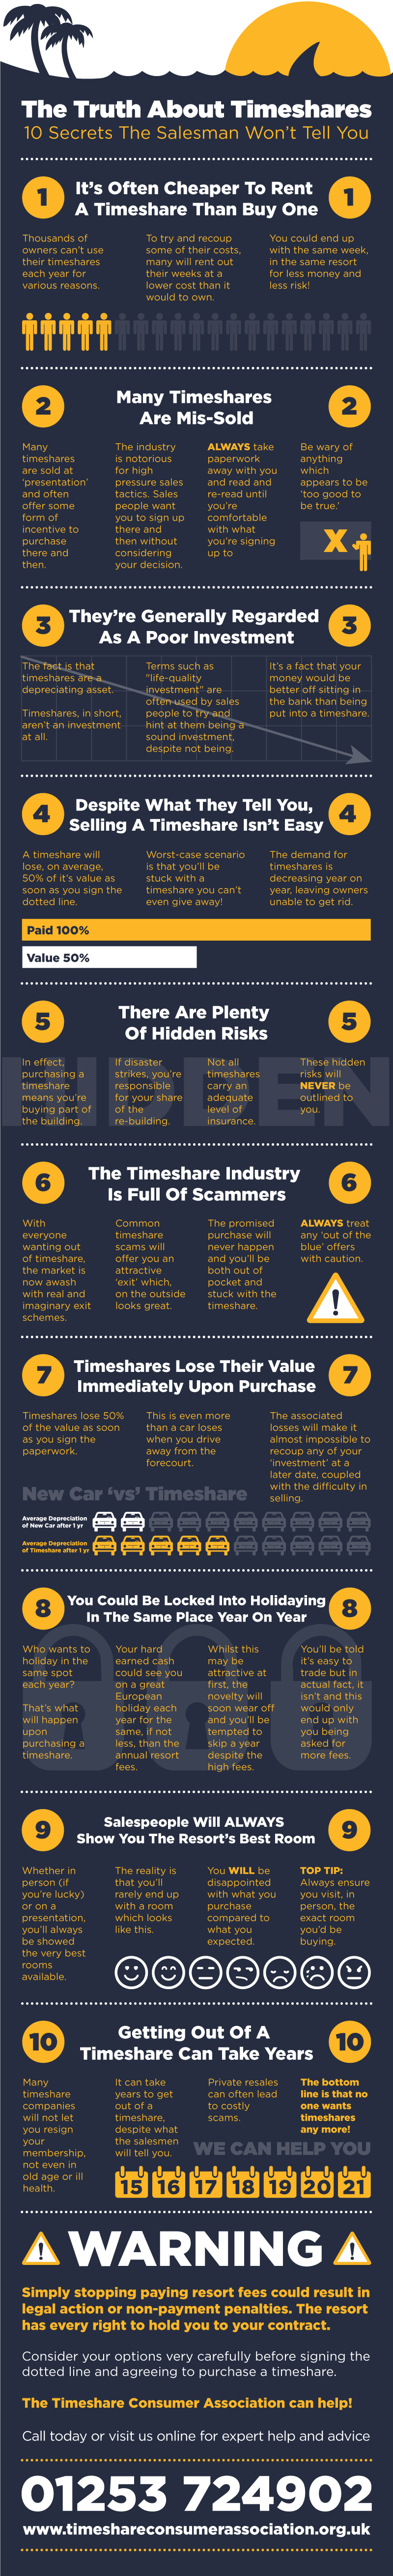 The Truth About Timeshares - 10 Secrets The Salesman Won't Tell You